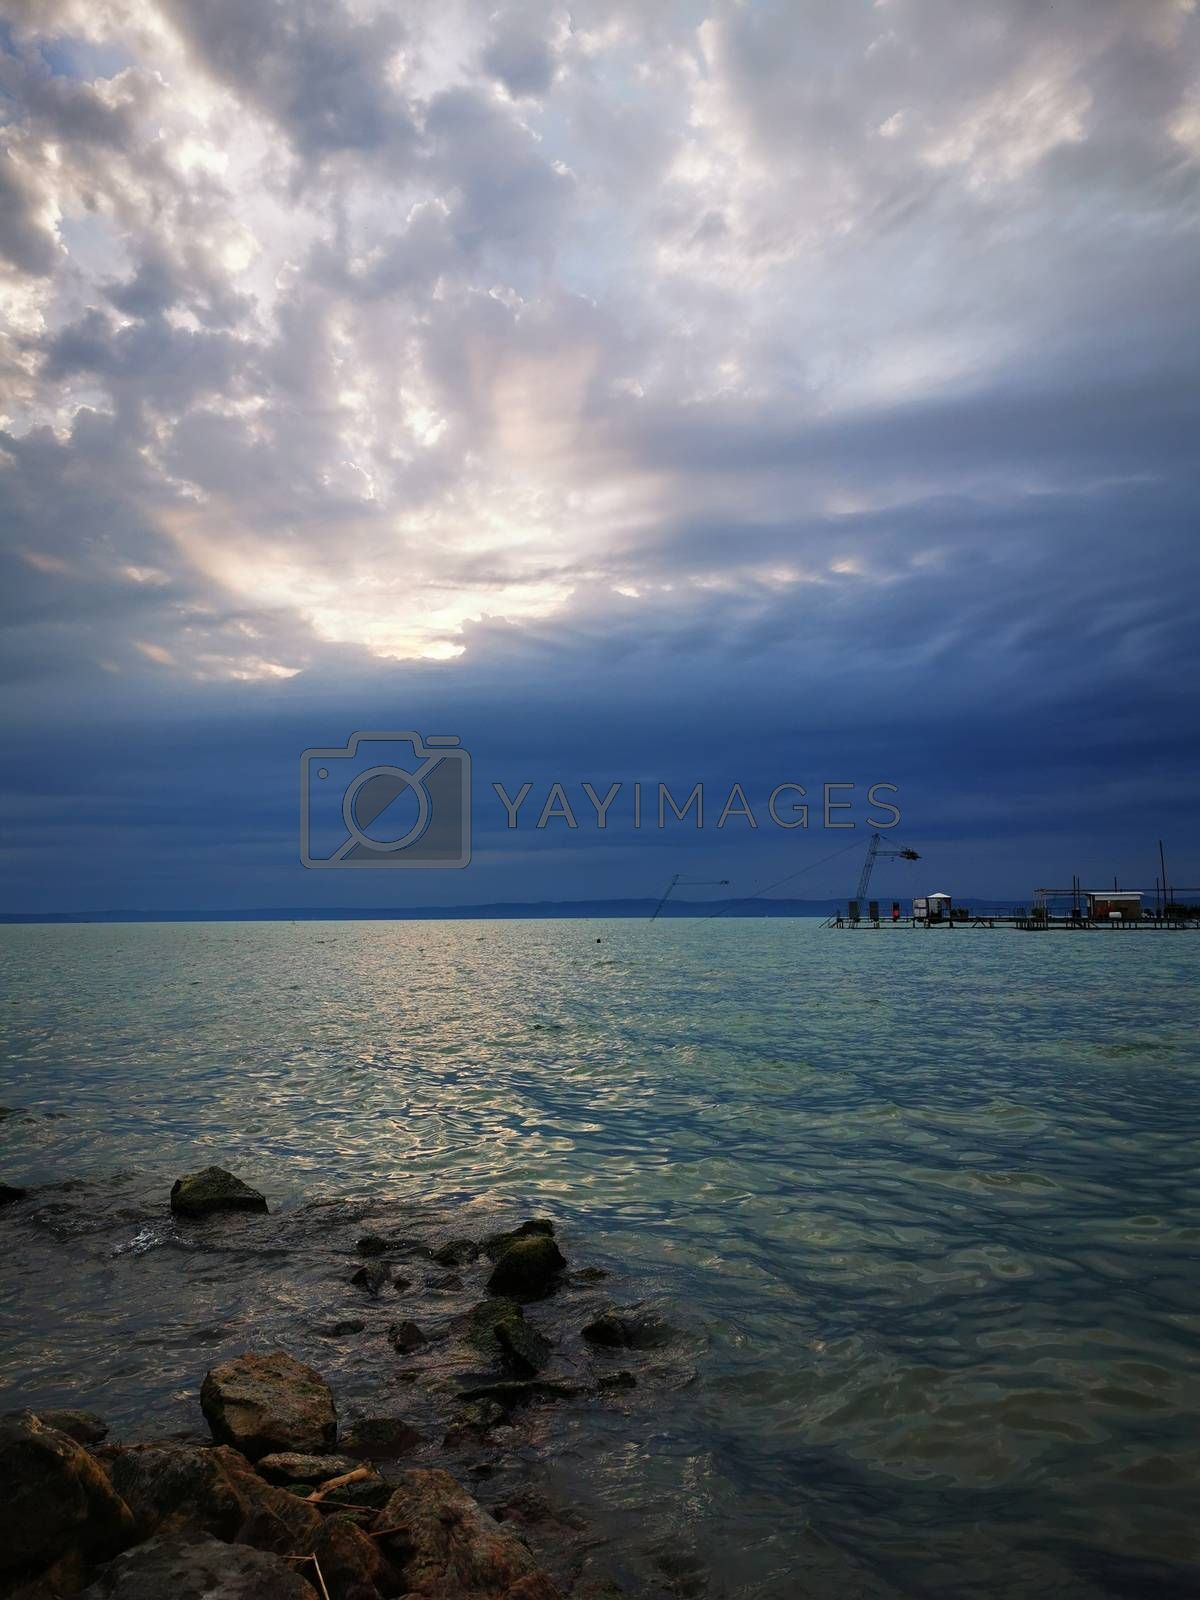 Royalty free image of Clouds in the sky over a body of water by balage941